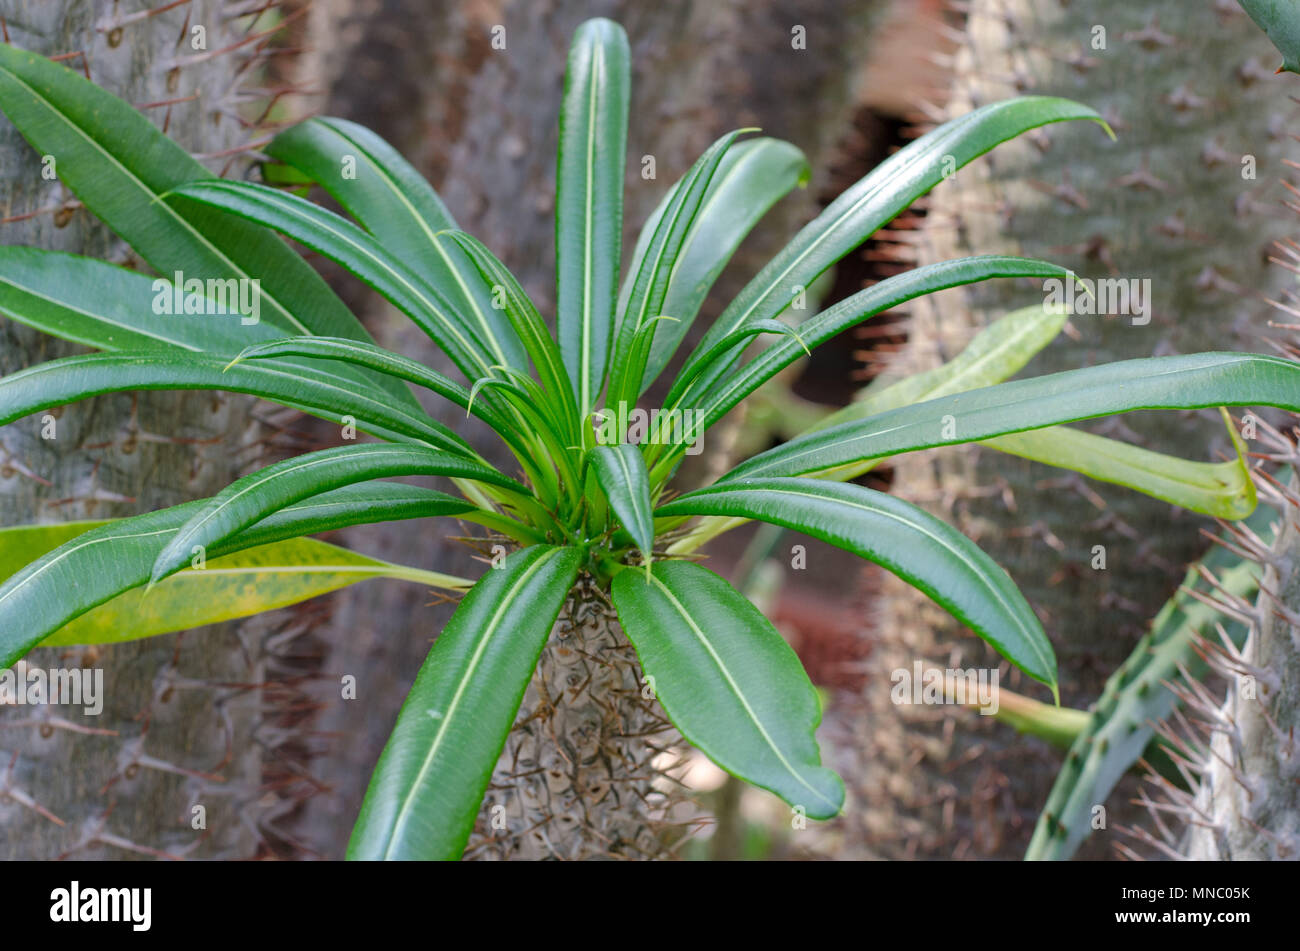 Pachypodium Lamerei Madagascar Palm also called Club Foot - Stock Image